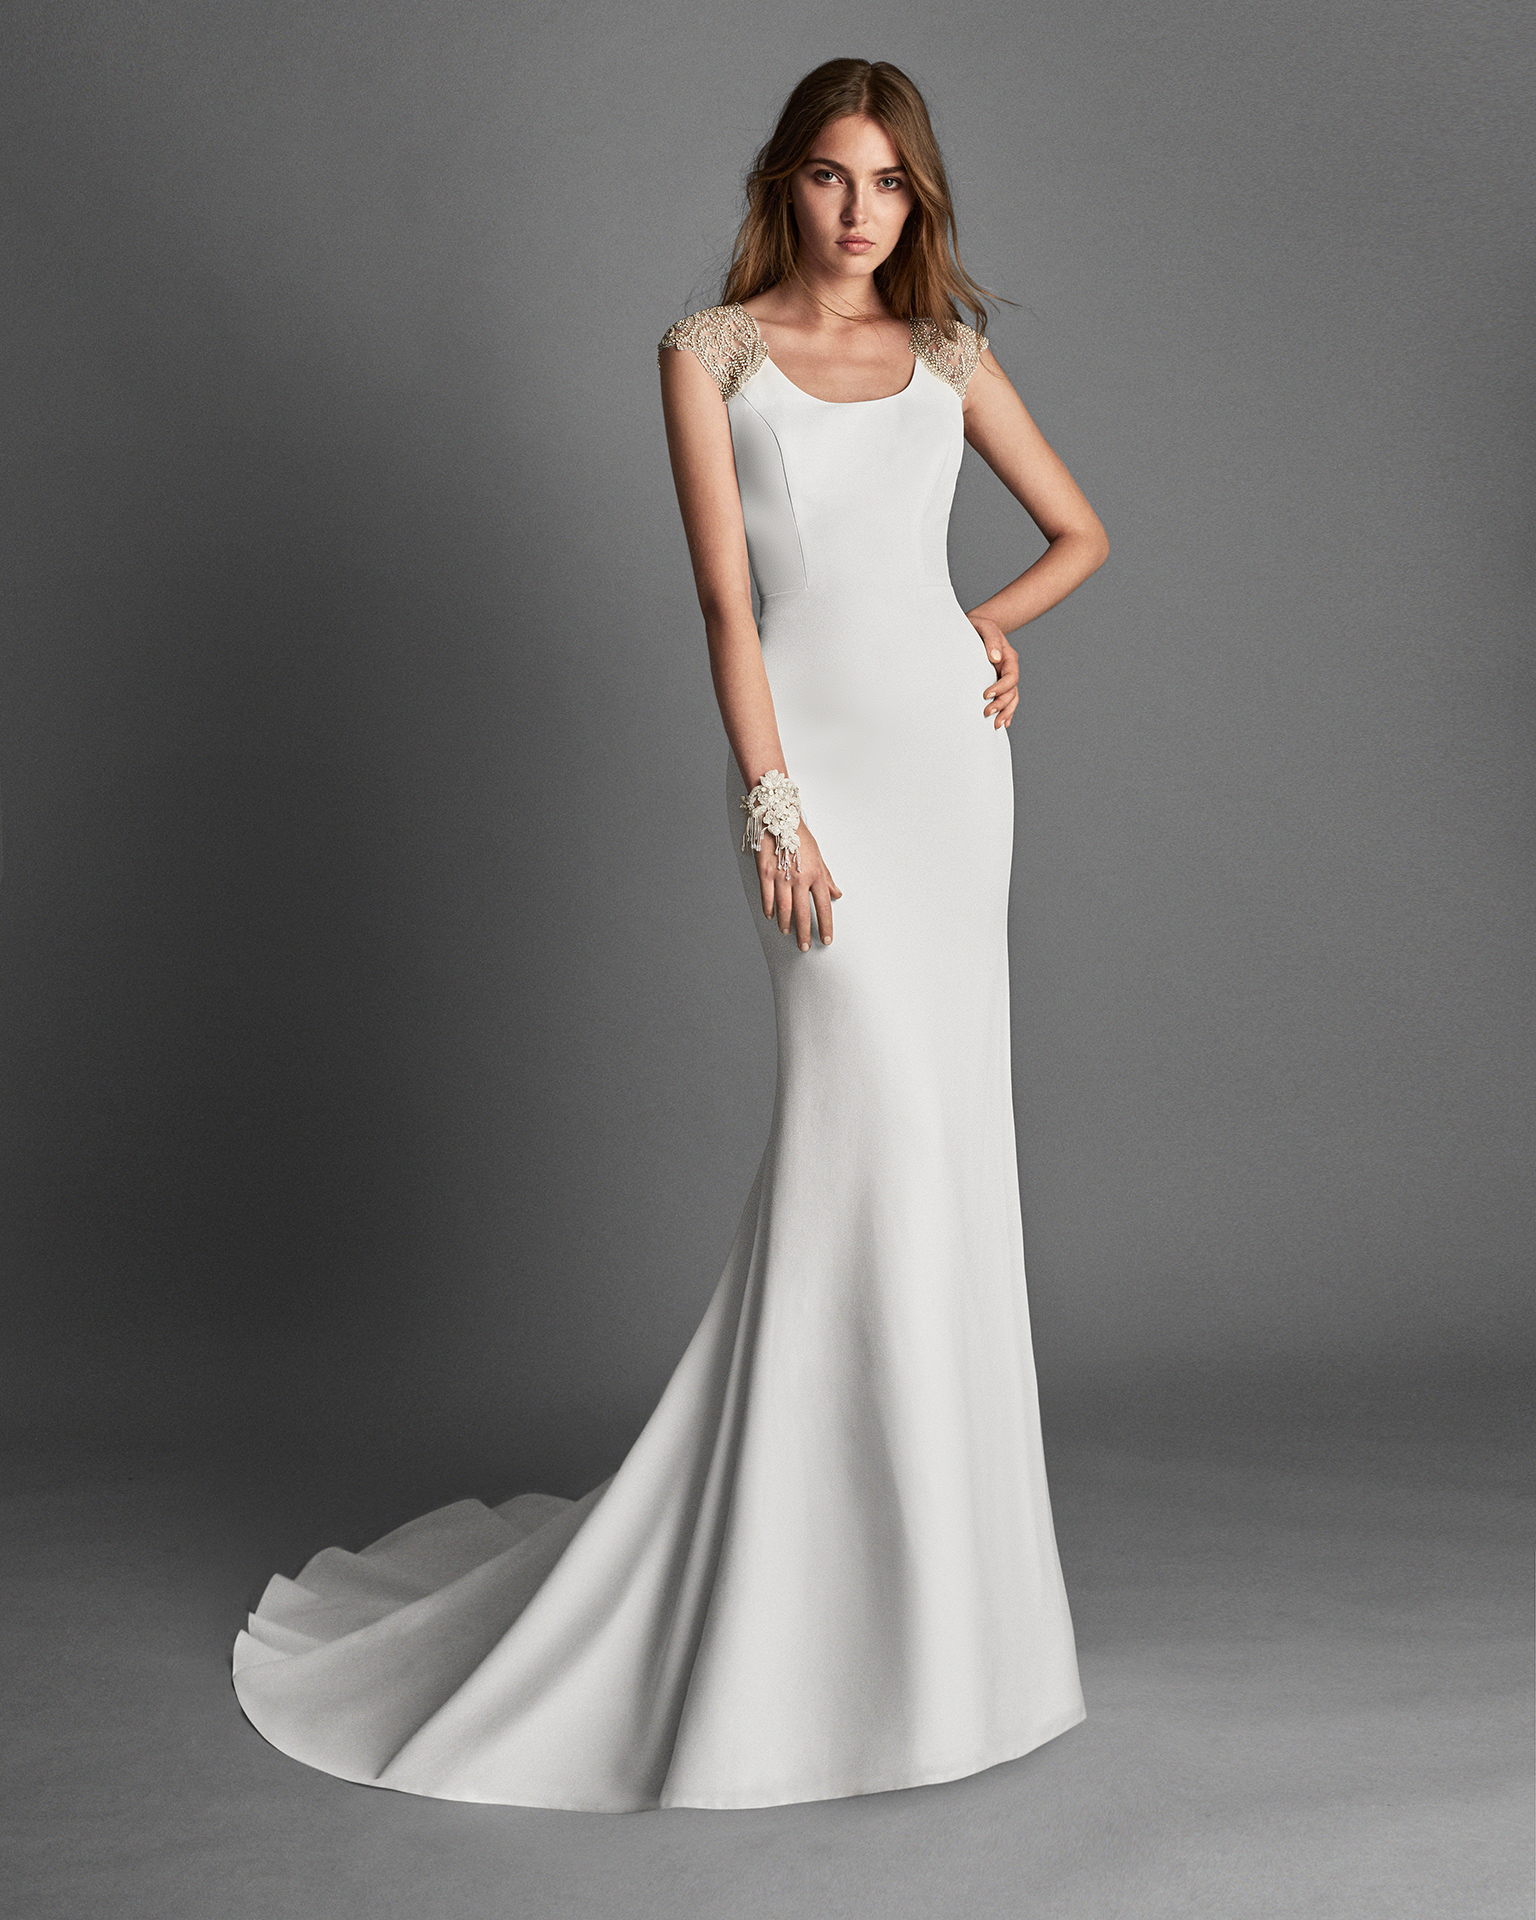 Mermaid-style crepe wedding dress with short sleeves and beaded lace back.